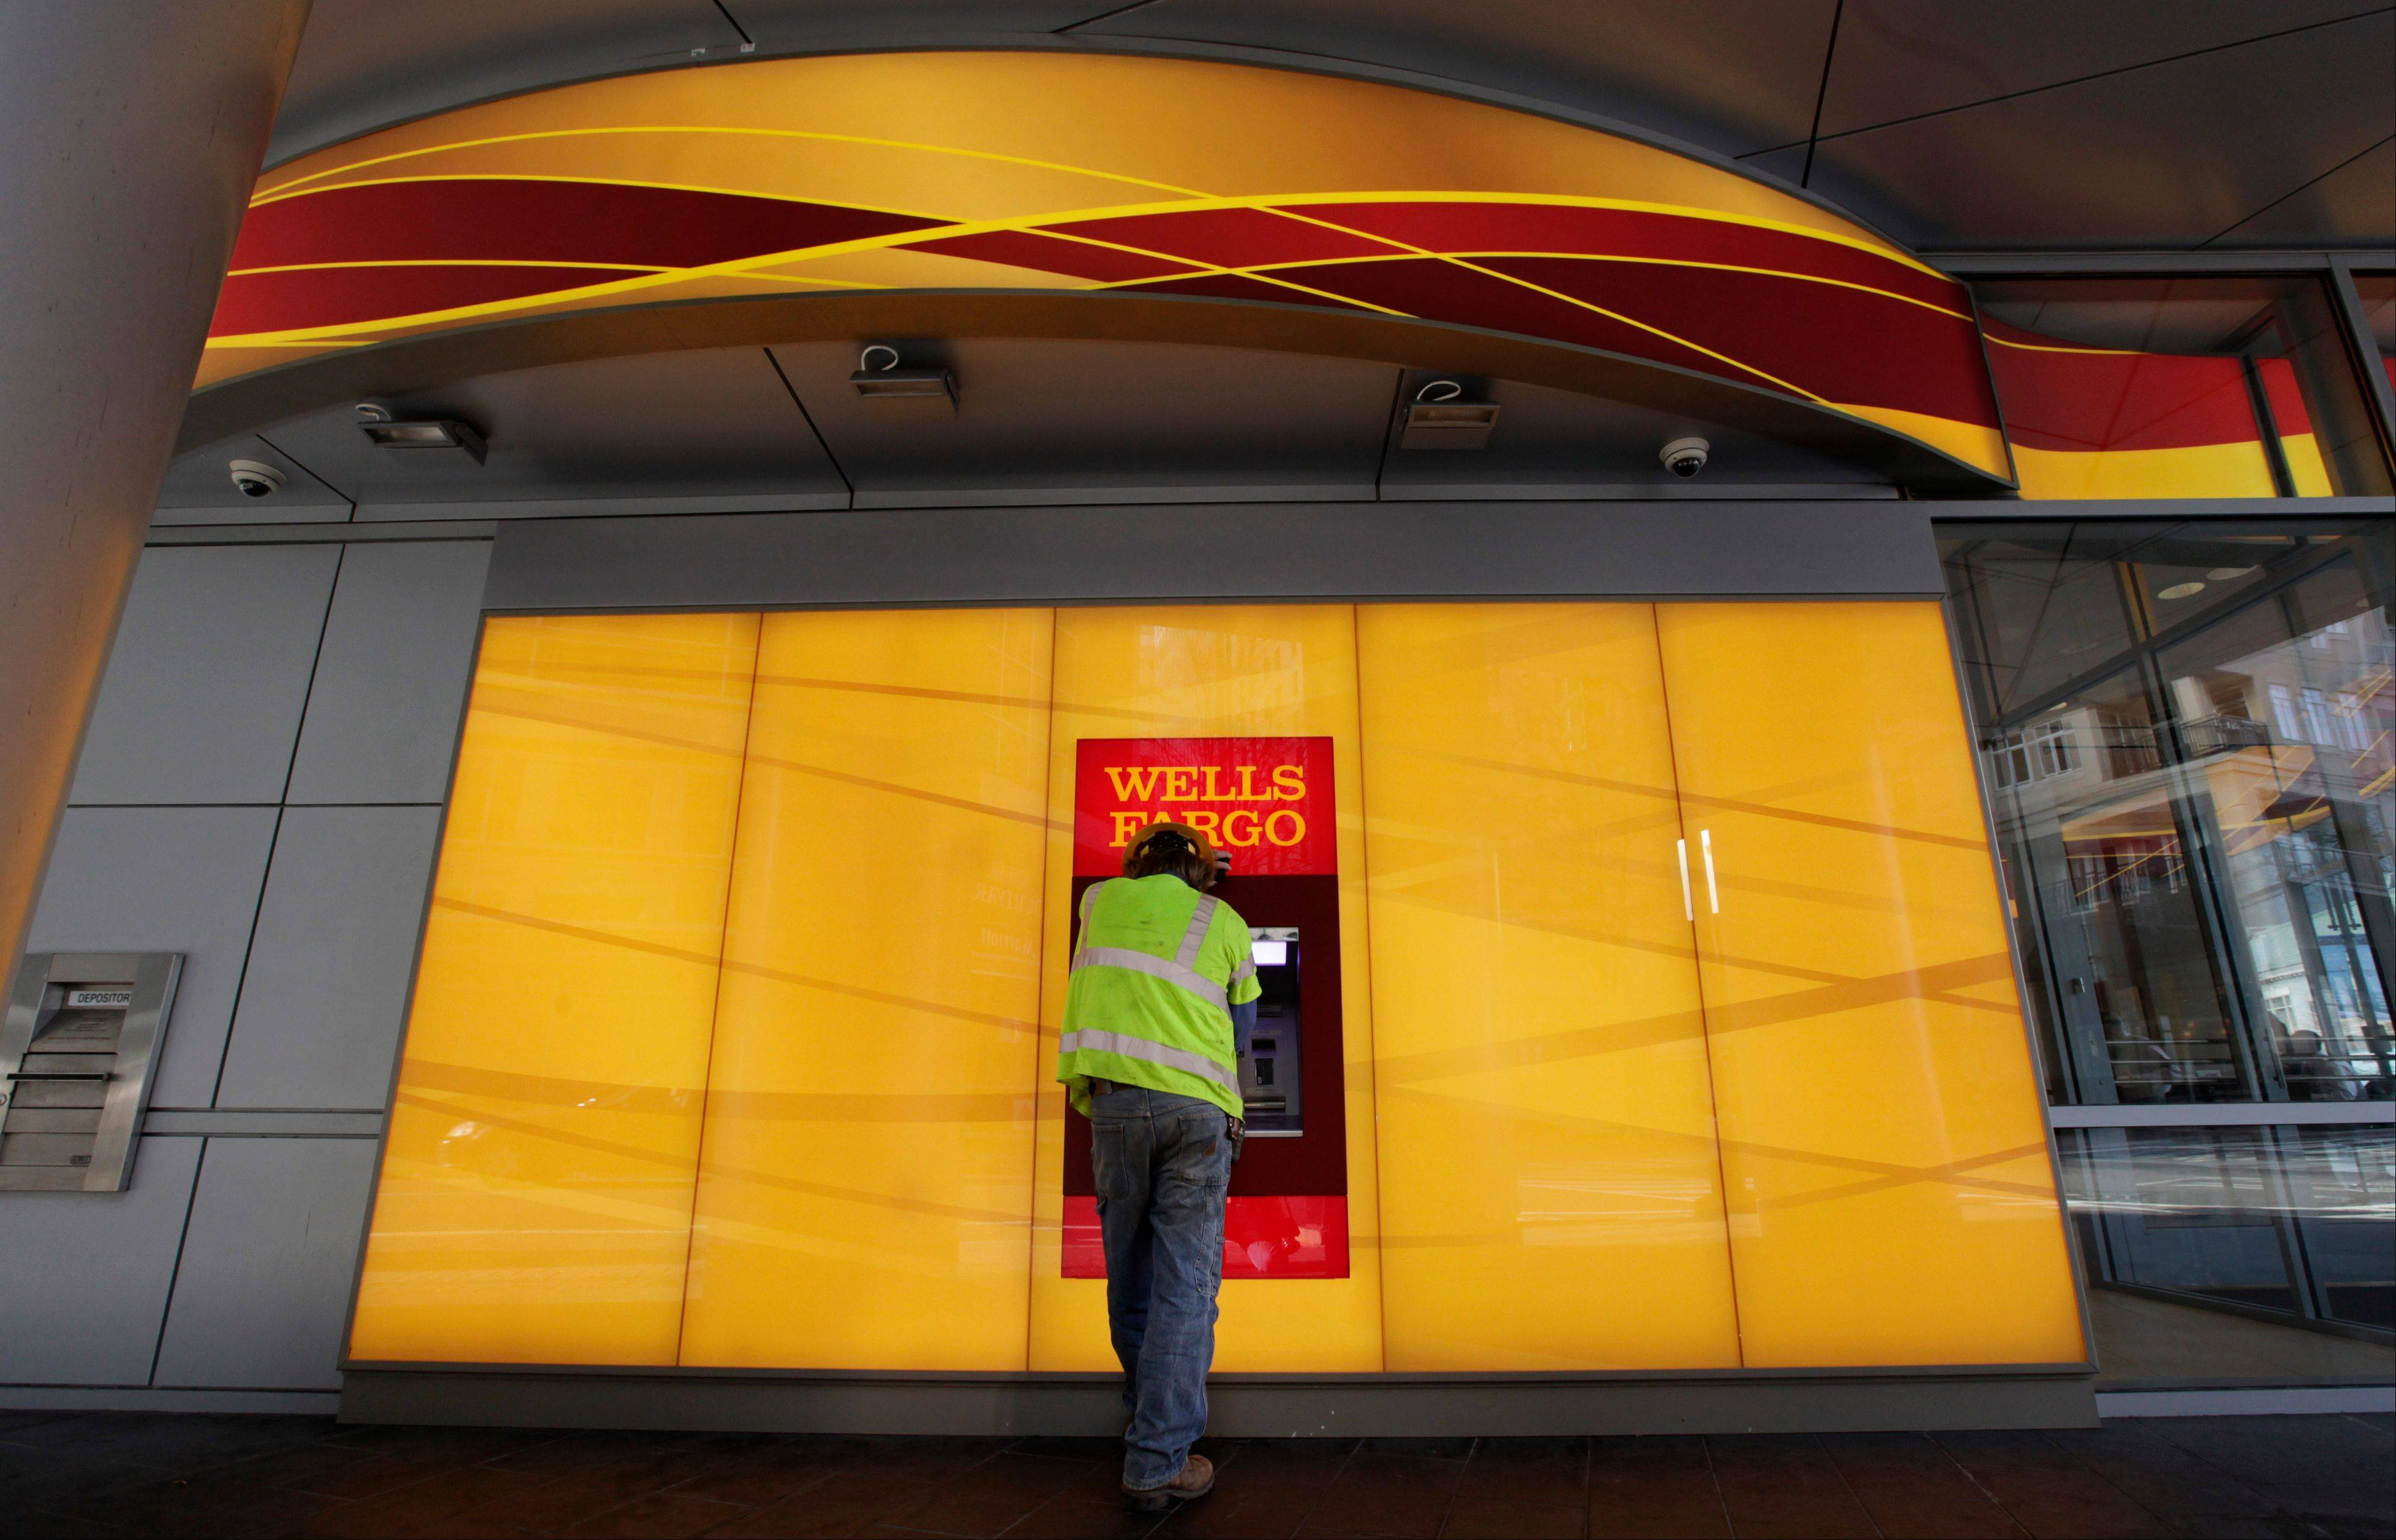 Wells Fargo, the biggest U.S. mortgage lender, said Friday its second-quarter profit surged 20 percent as it cut expenses.